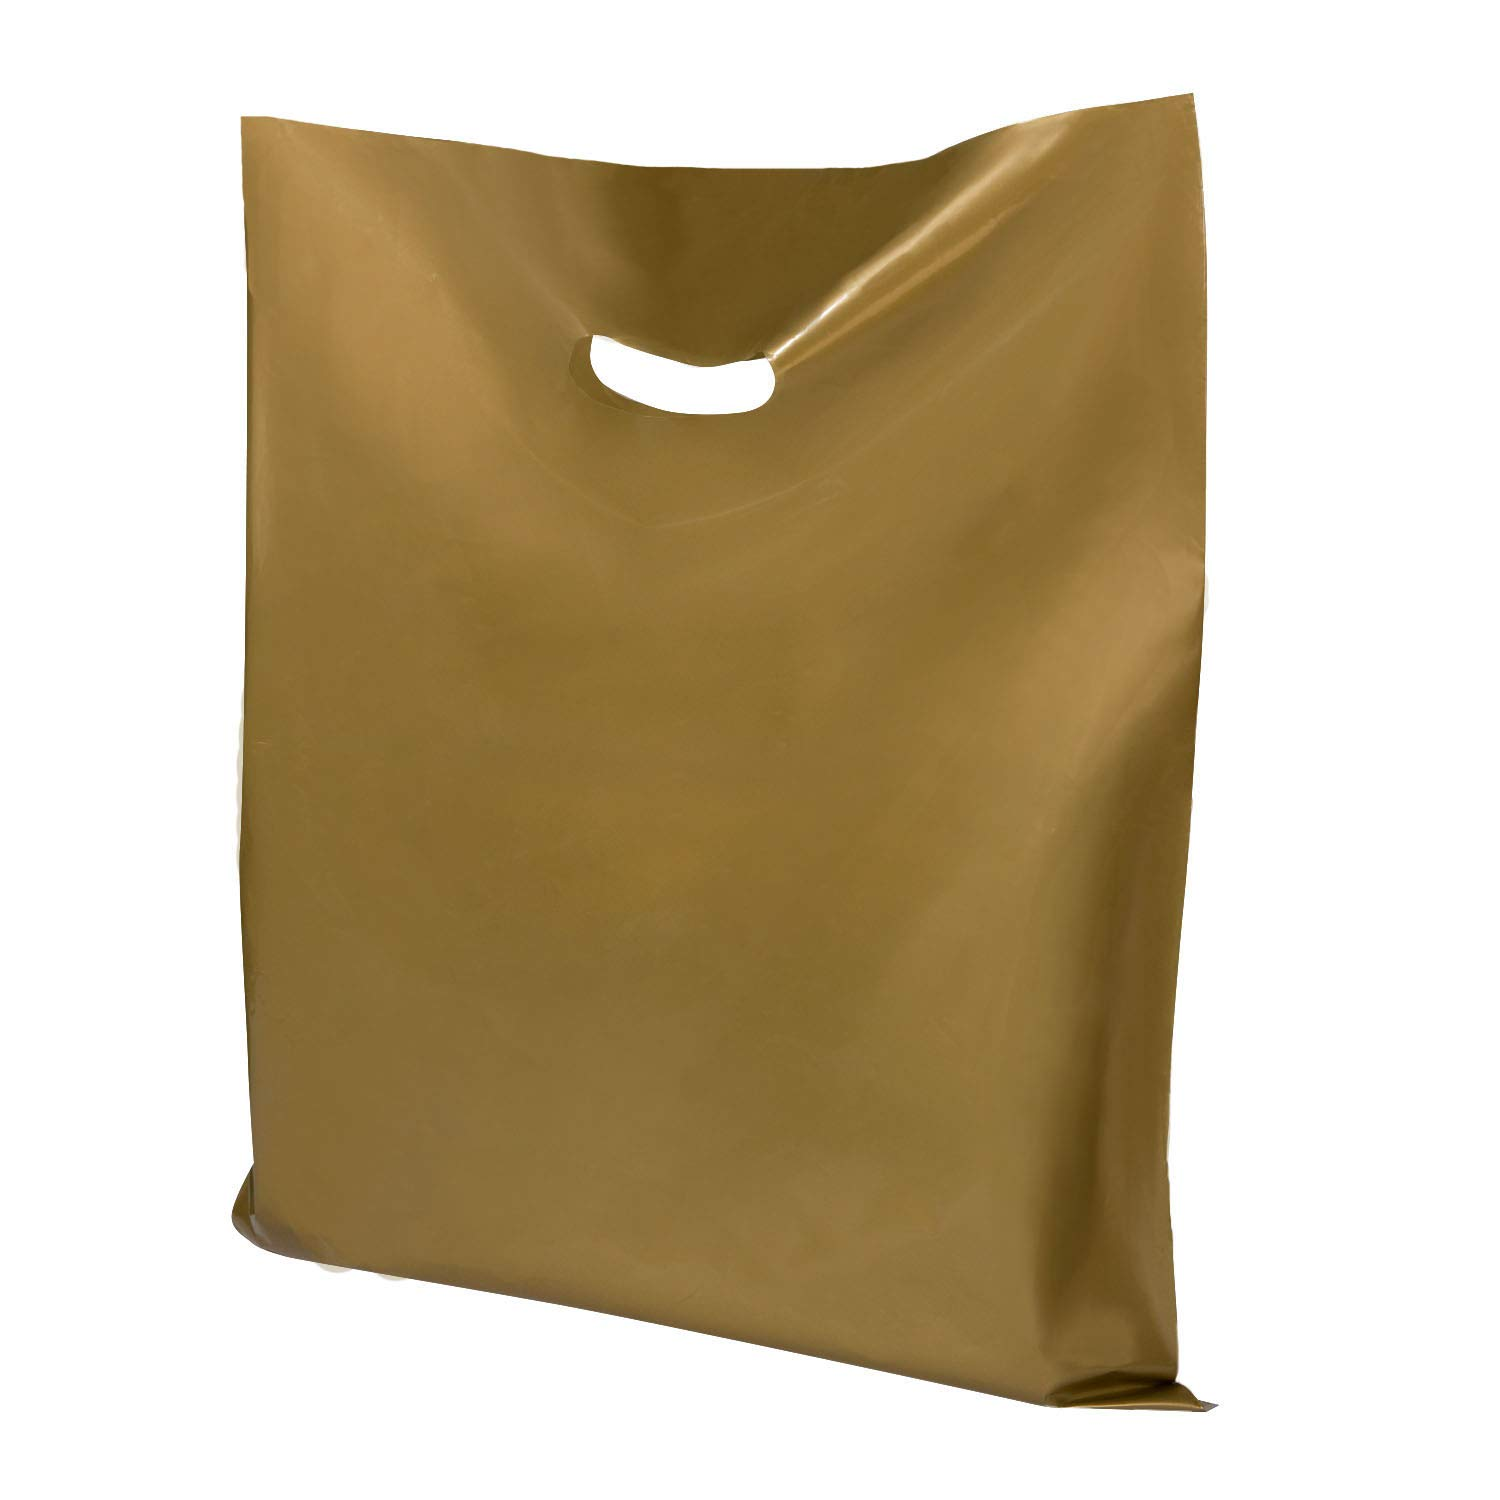 """Houseables Plastic Retail Bags, Merchandise Bag, 16""""x18"""", 100 Pack, Gold, Die Cut Handle, Craft Fair Supplies, Store Shopping, Glossy, for Sales, Product, Treat, Gift, Clothes, Party, Favor, Boutique"""